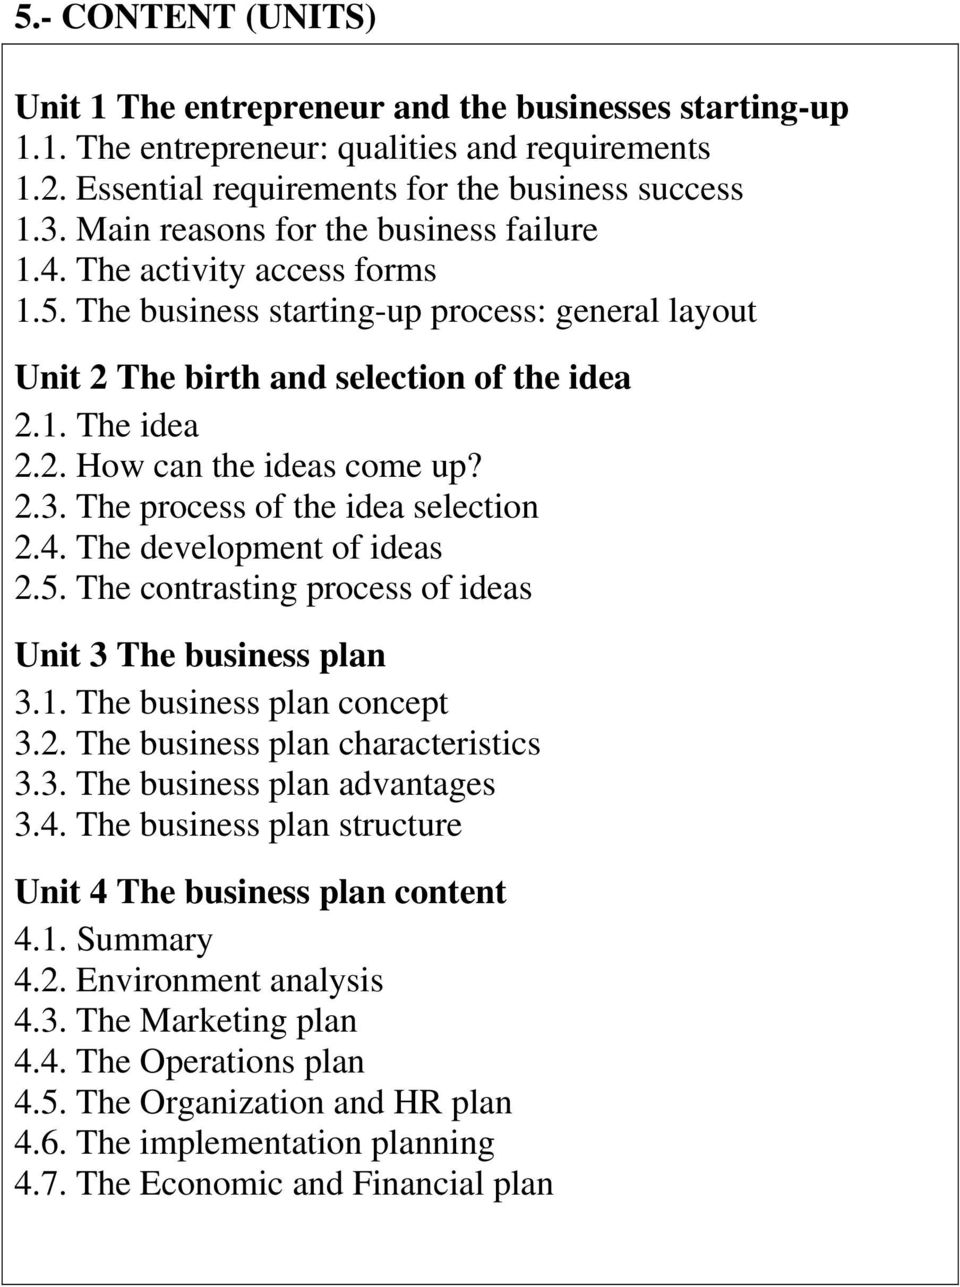 2.3. The process of the idea selection 2.4. The development of ideas 2.5. The contrasting process of ideas Unit 3 The business plan 3.1. The business plan concept 3.2. The business plan characteristics 3.